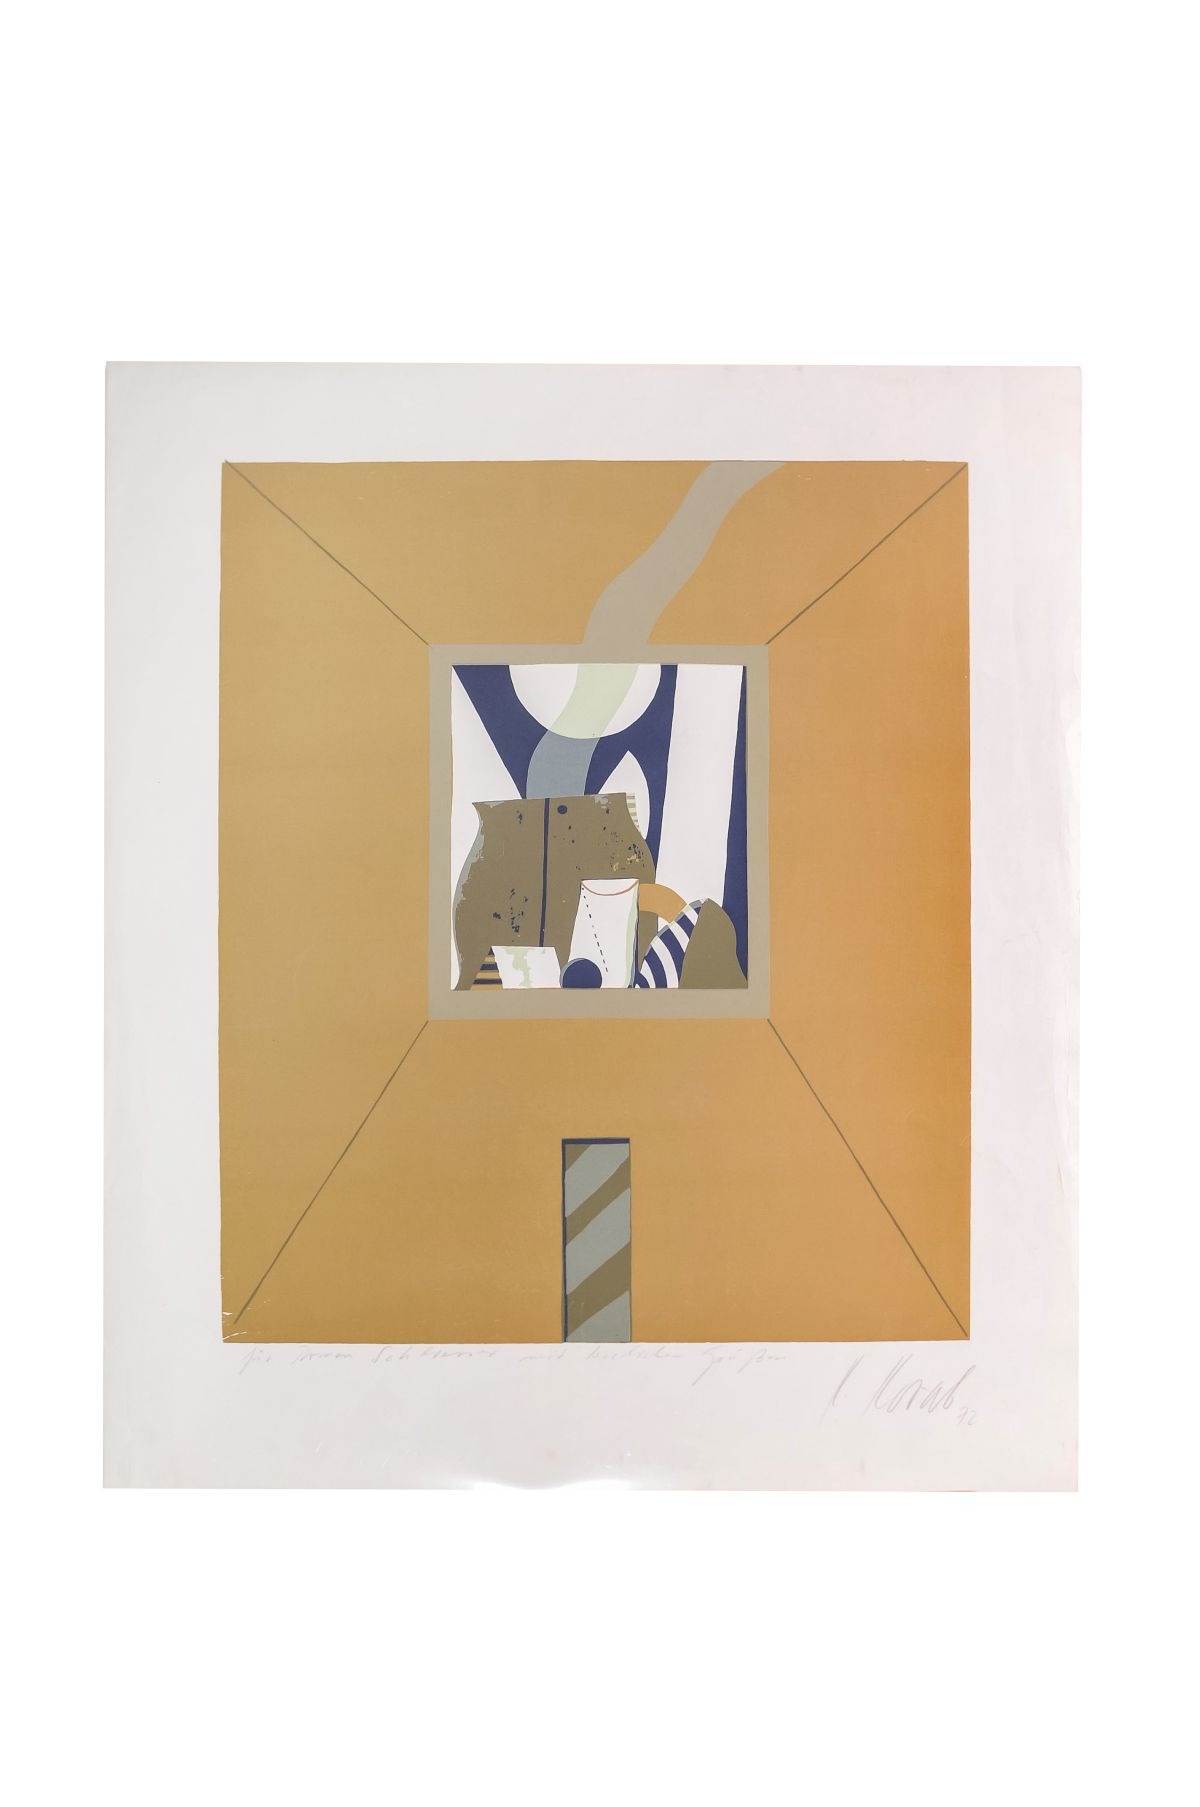 "#12 Karl Korab (1937) ""Abstract Composition"" 